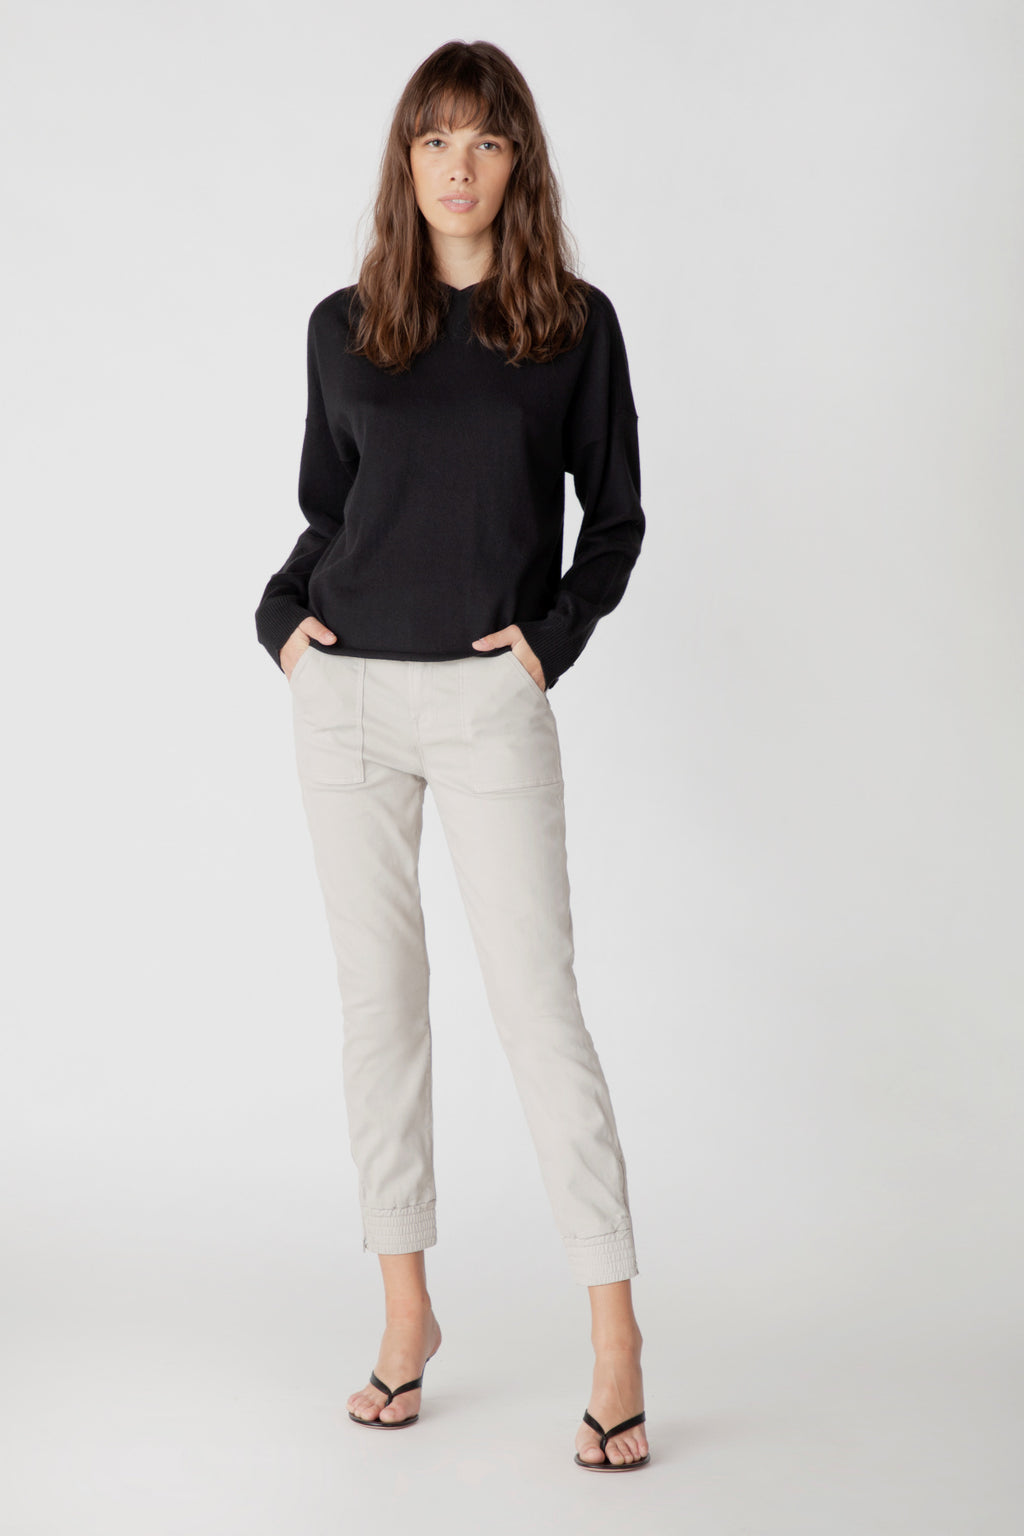 J BRAND - Arkin Jogger Pants online at PAYA boutique